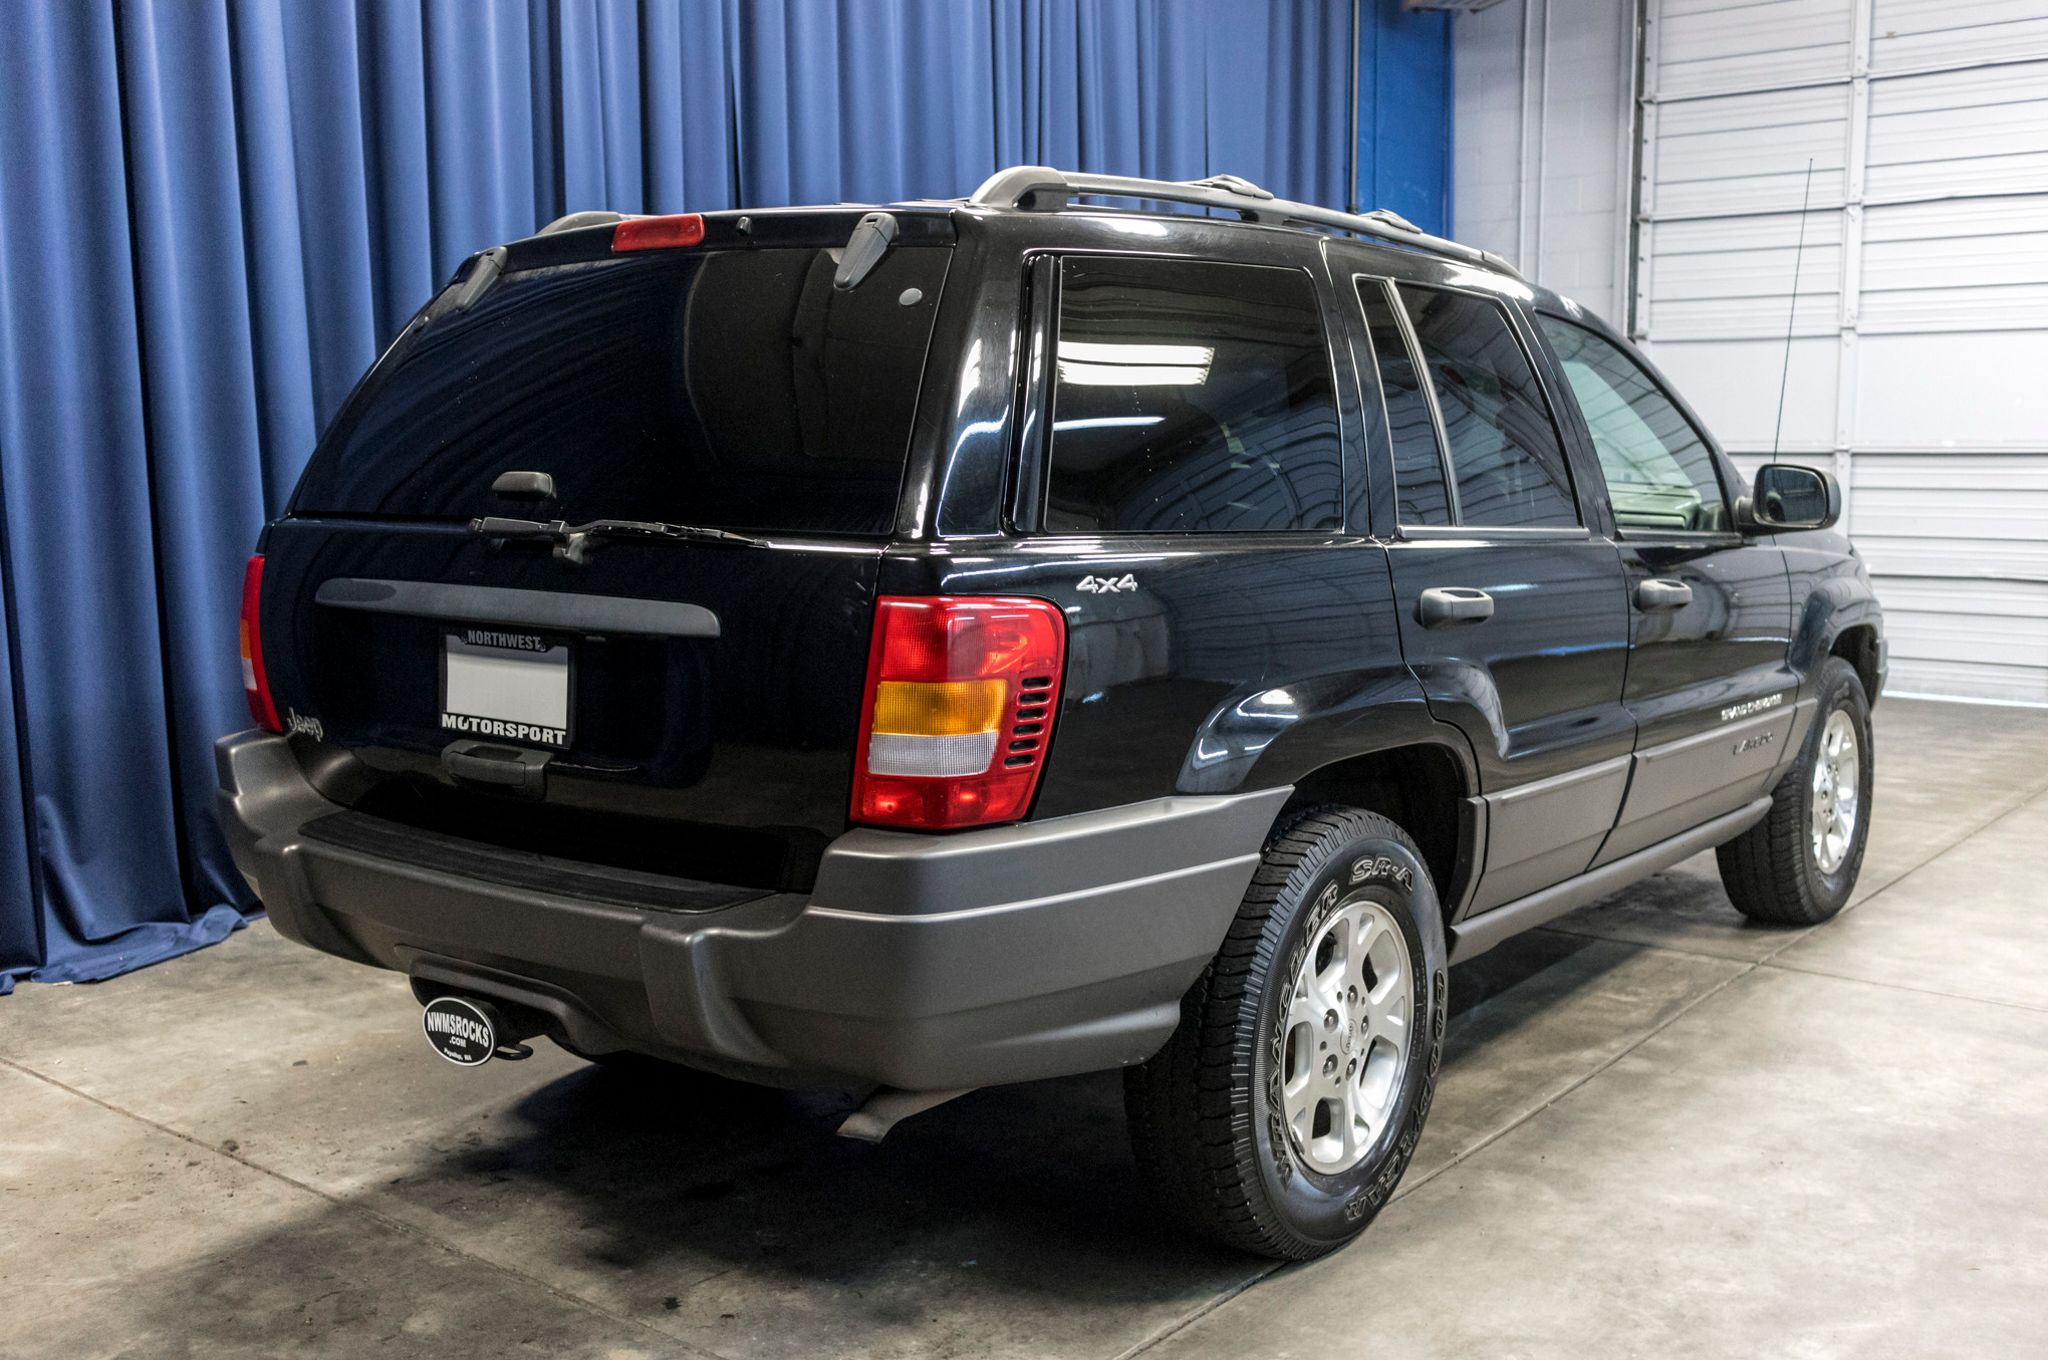 2001 jeep grand cherokee laredo 4x4 - northwest motorsport